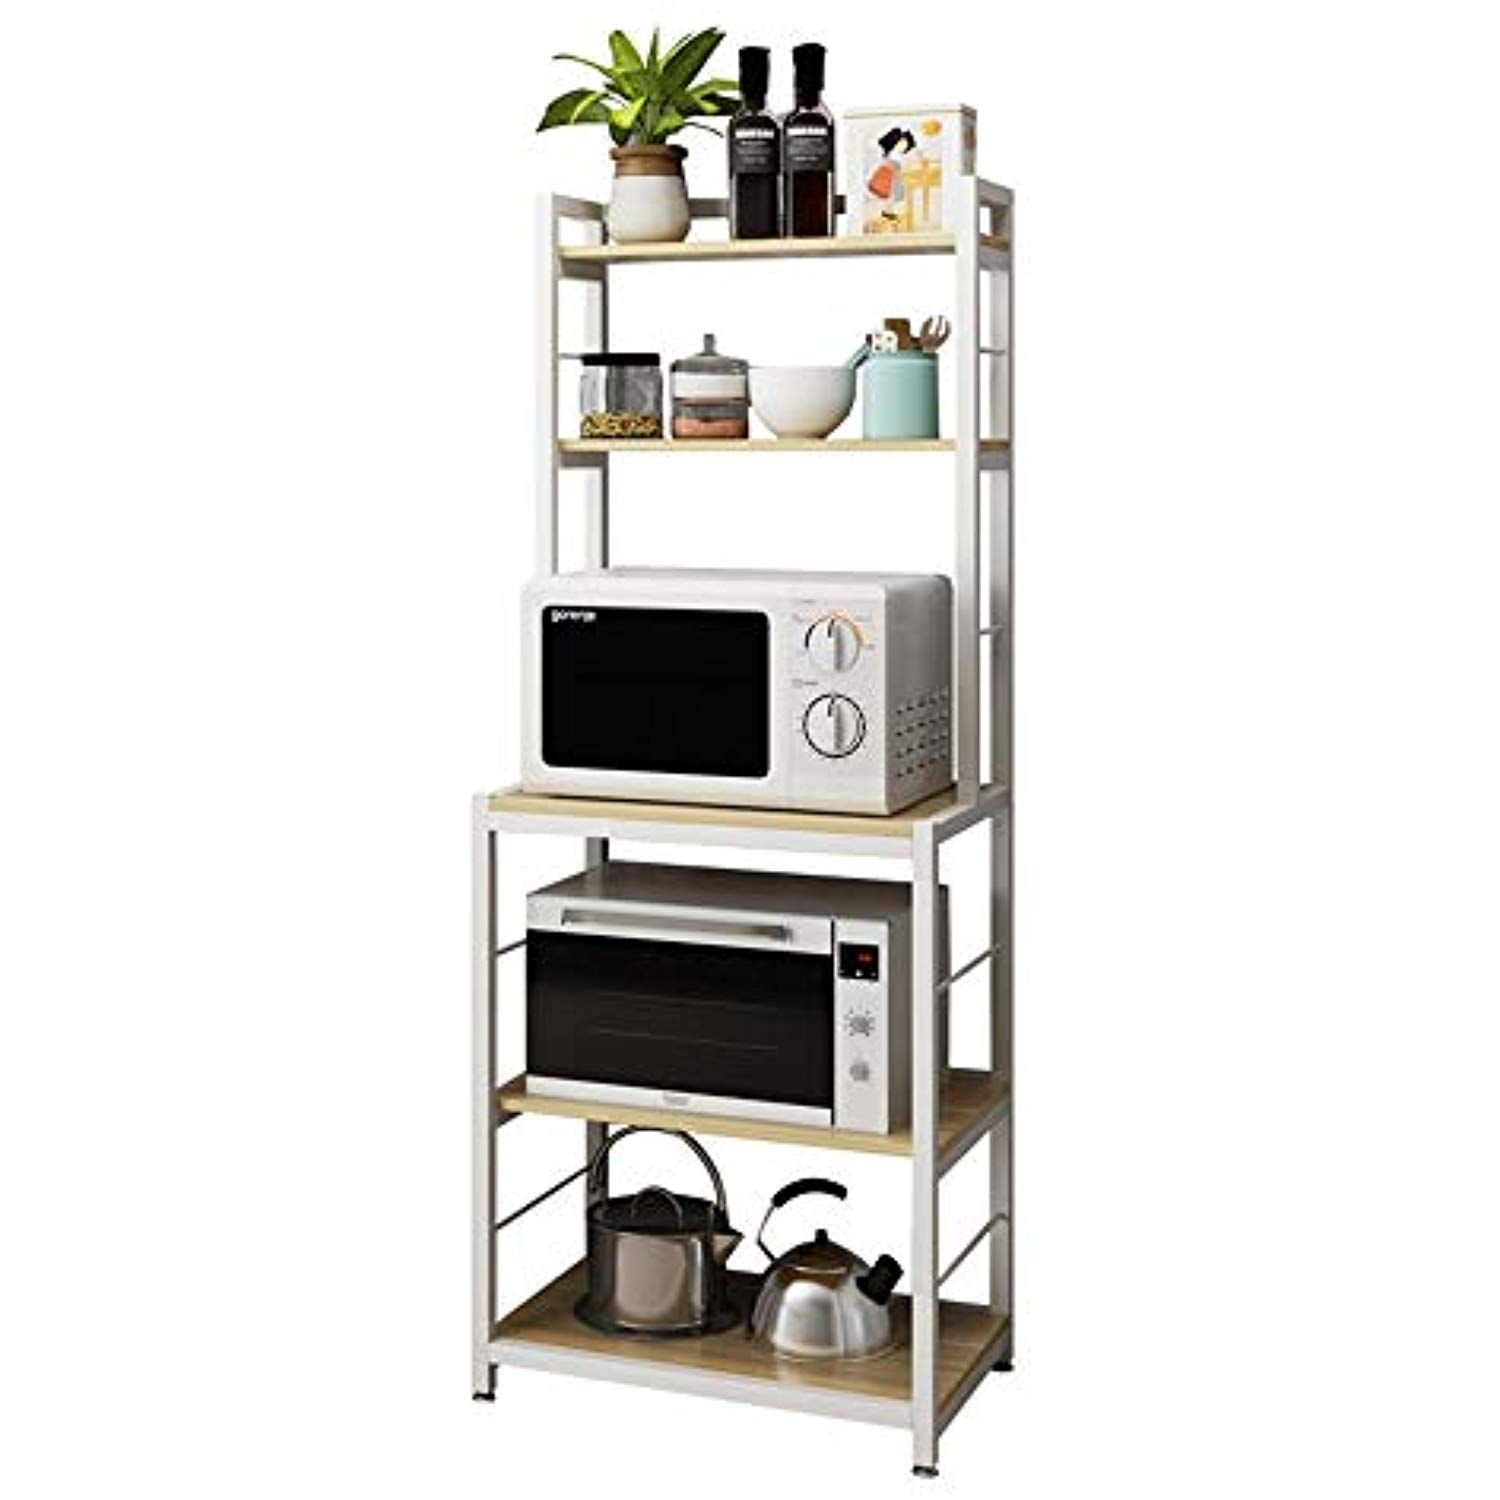 home kitchendining with images kitchen storage rack microwave in kitchen space saving storage on kitchen organization microwave id=65243